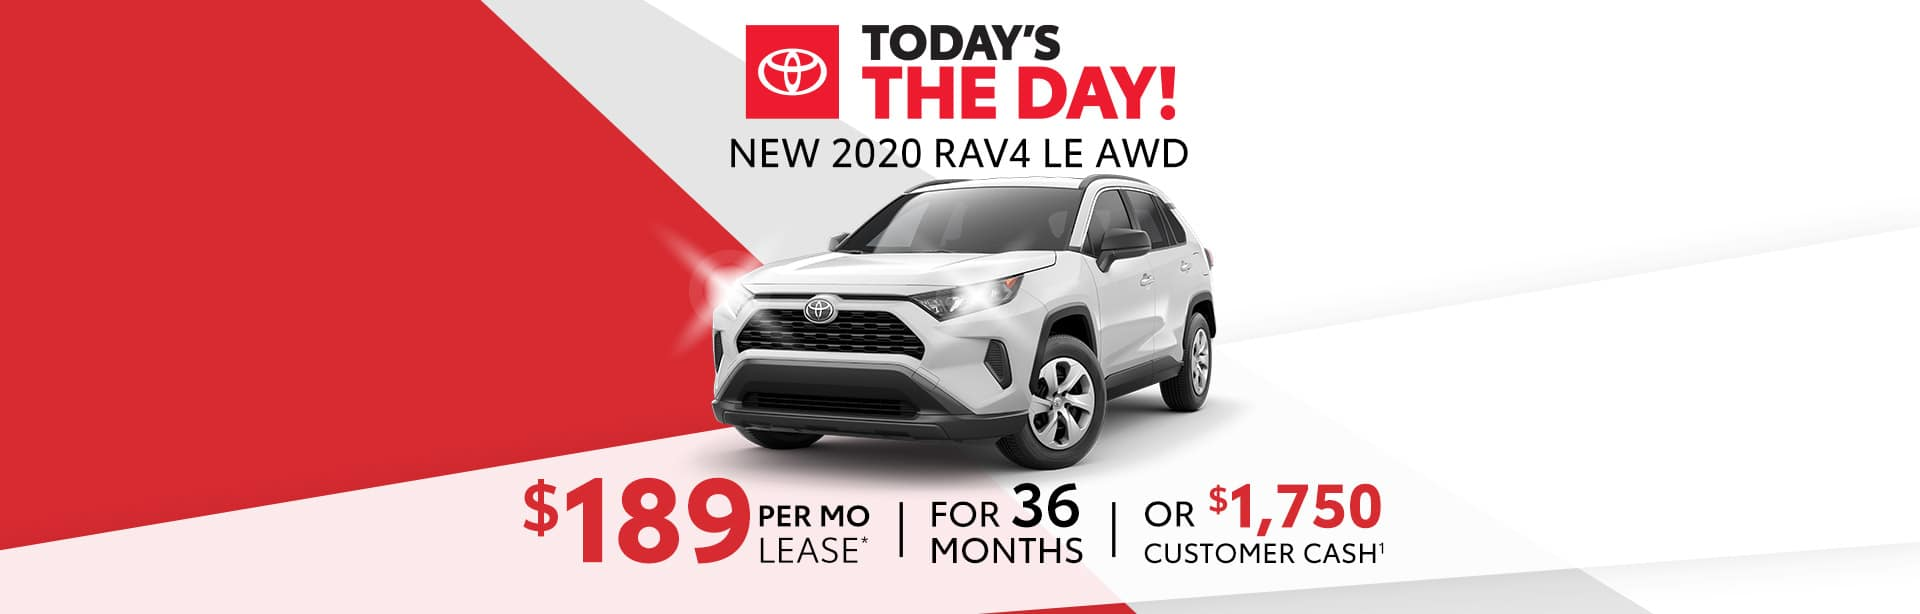 Lease Special on a new RAV4 in Columbus, Indiana